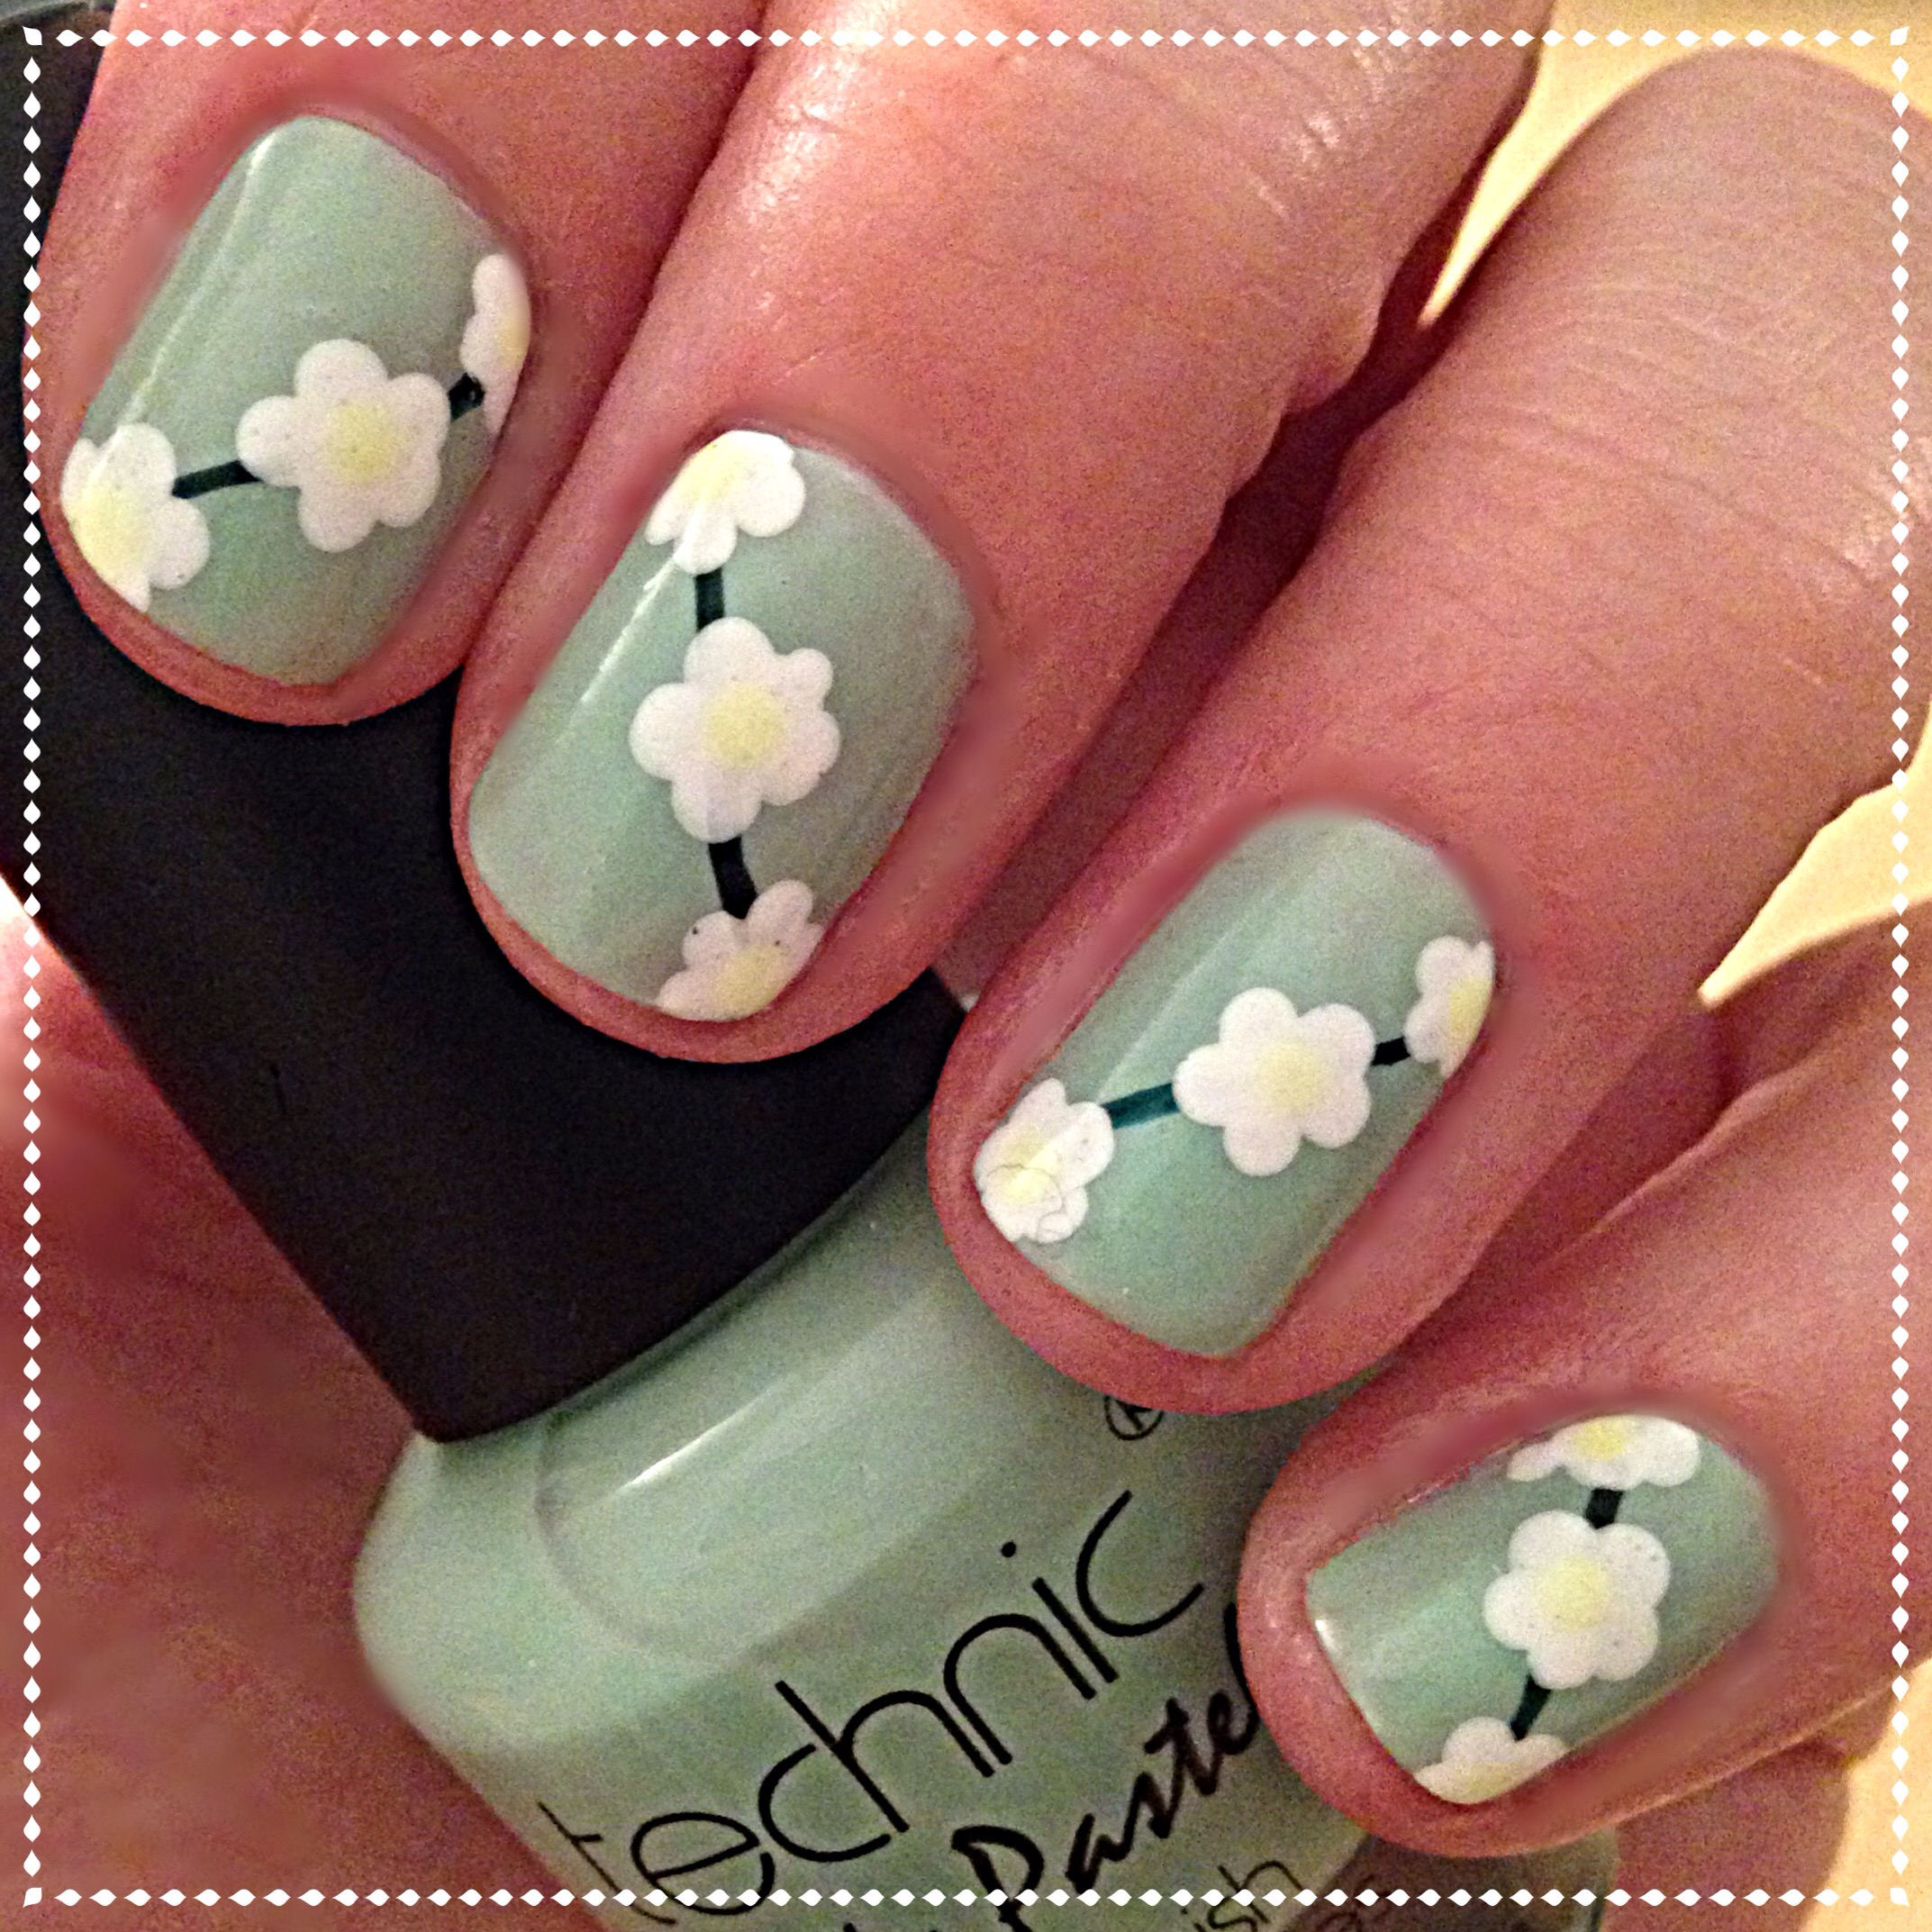 Daisy Chain Nails | beginnersnailart\'s Blog